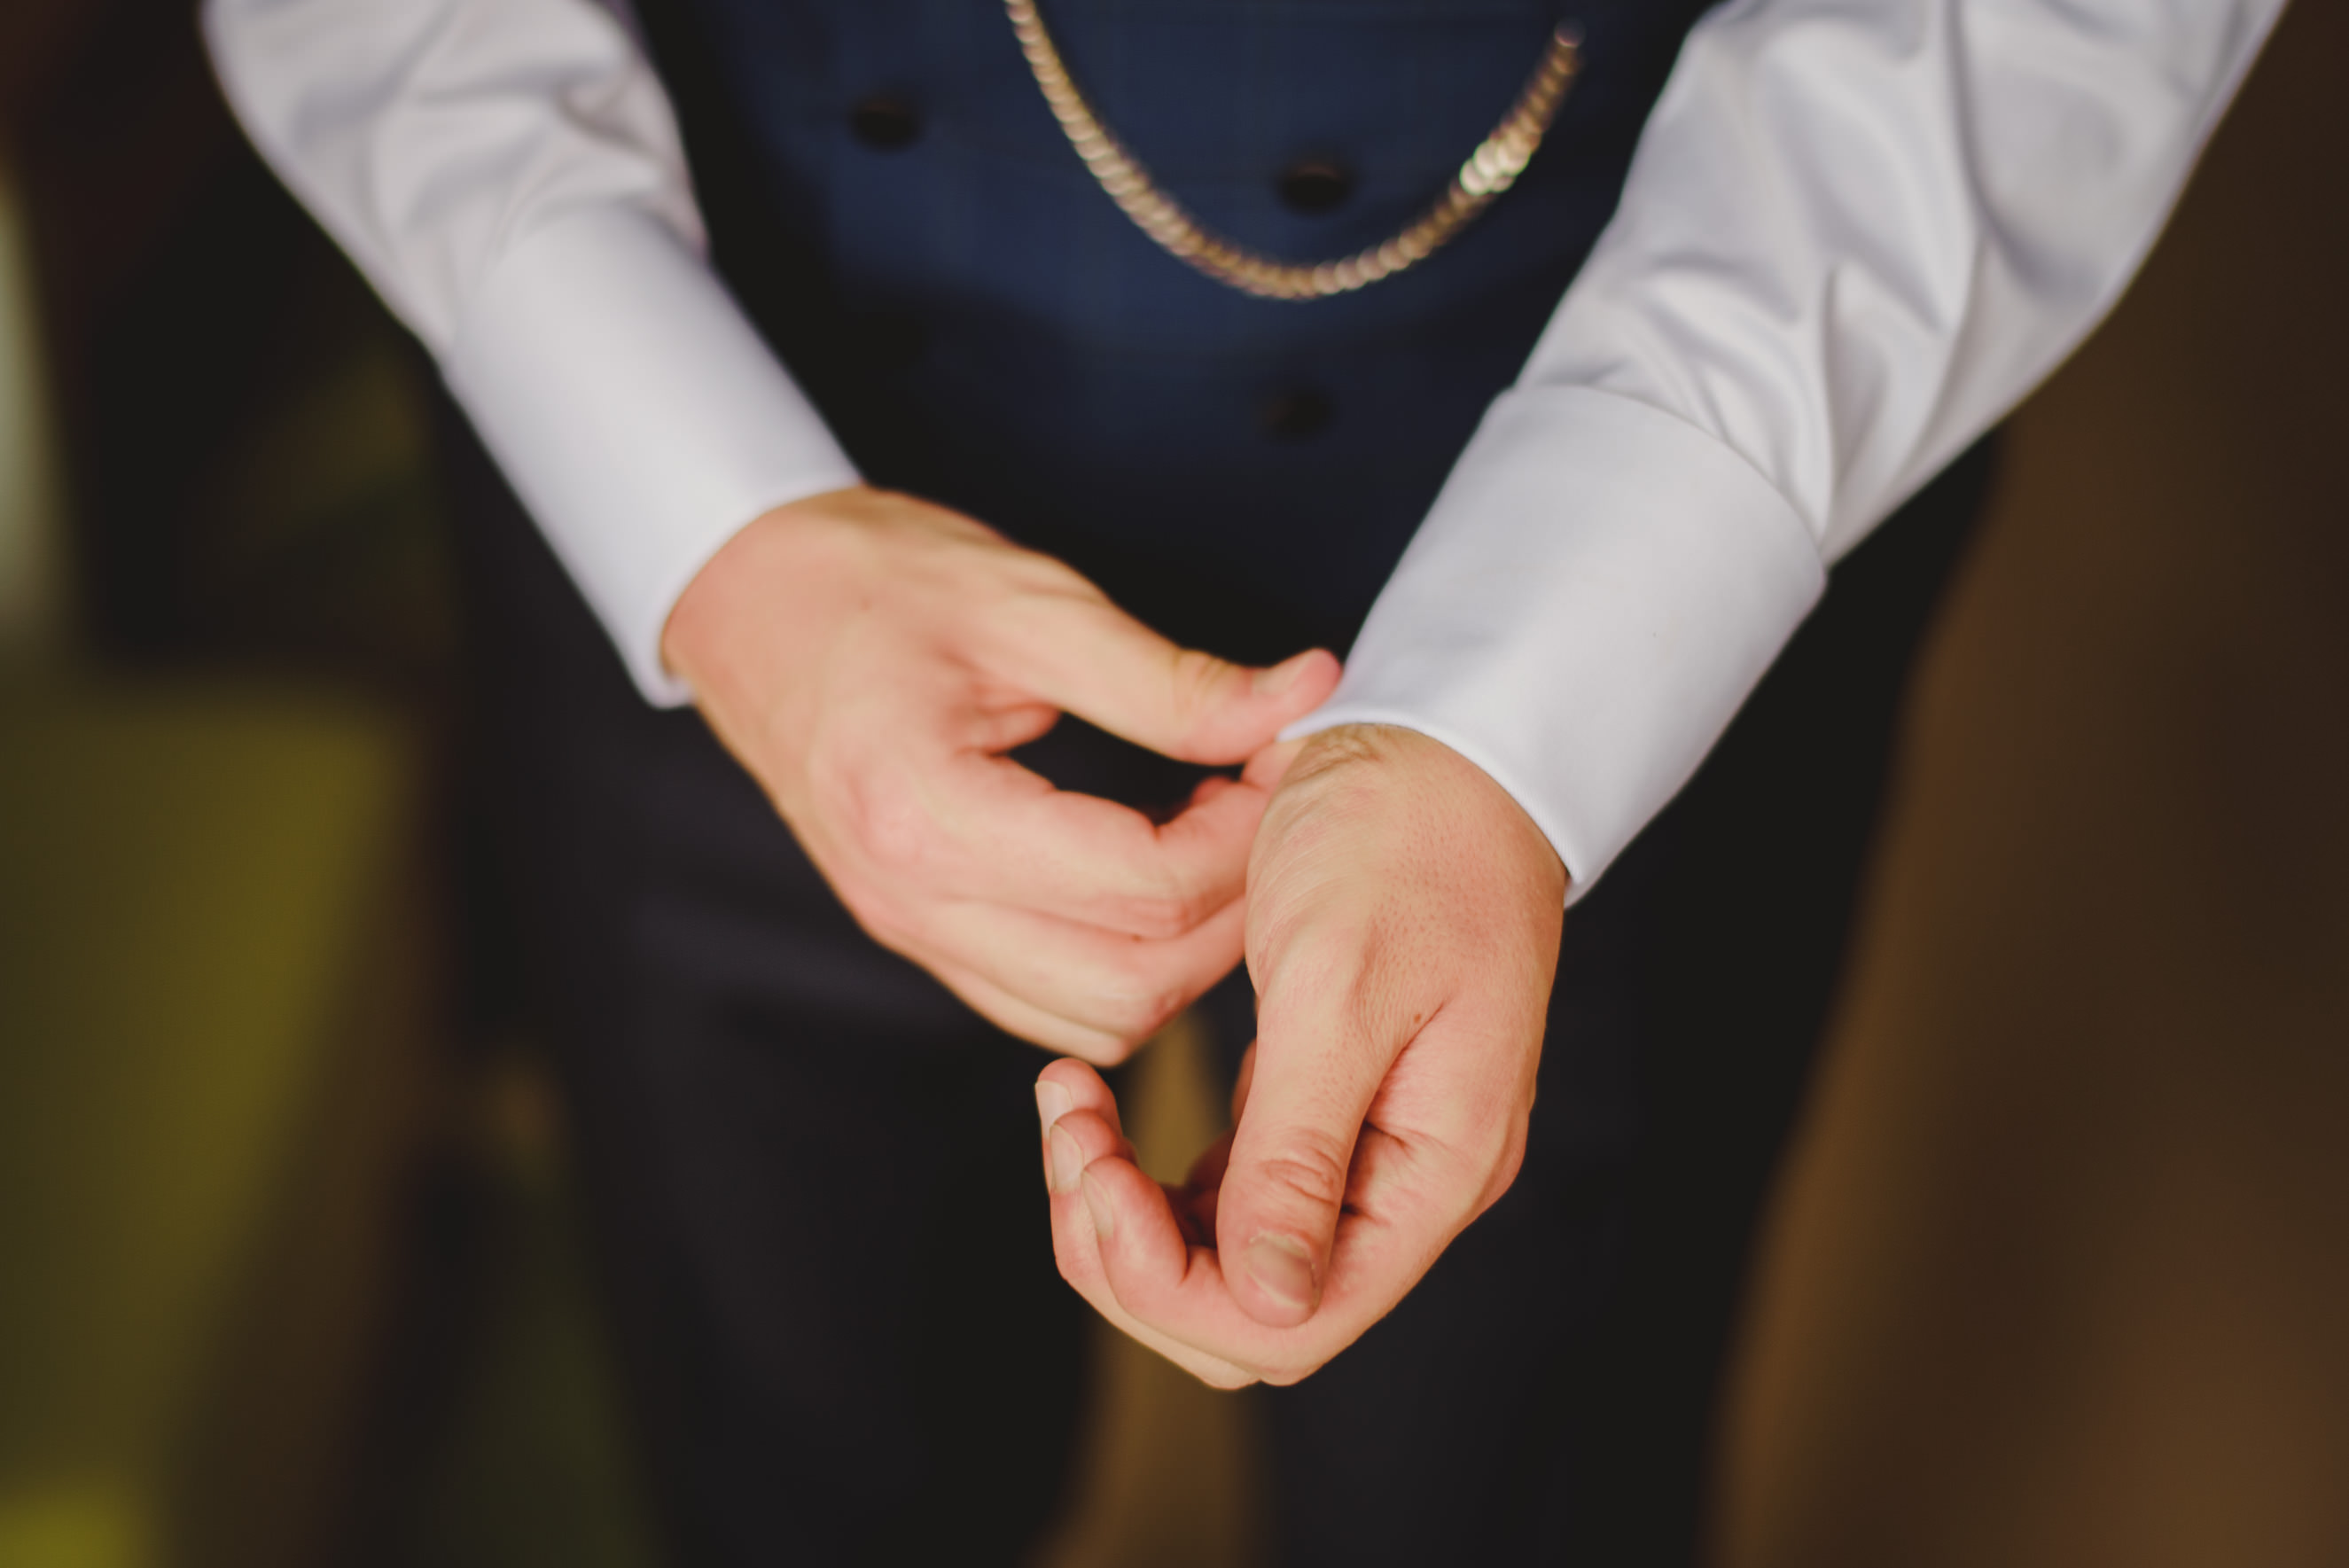 groom fixing his shirt and cufflings while getting ready for the wedding day.